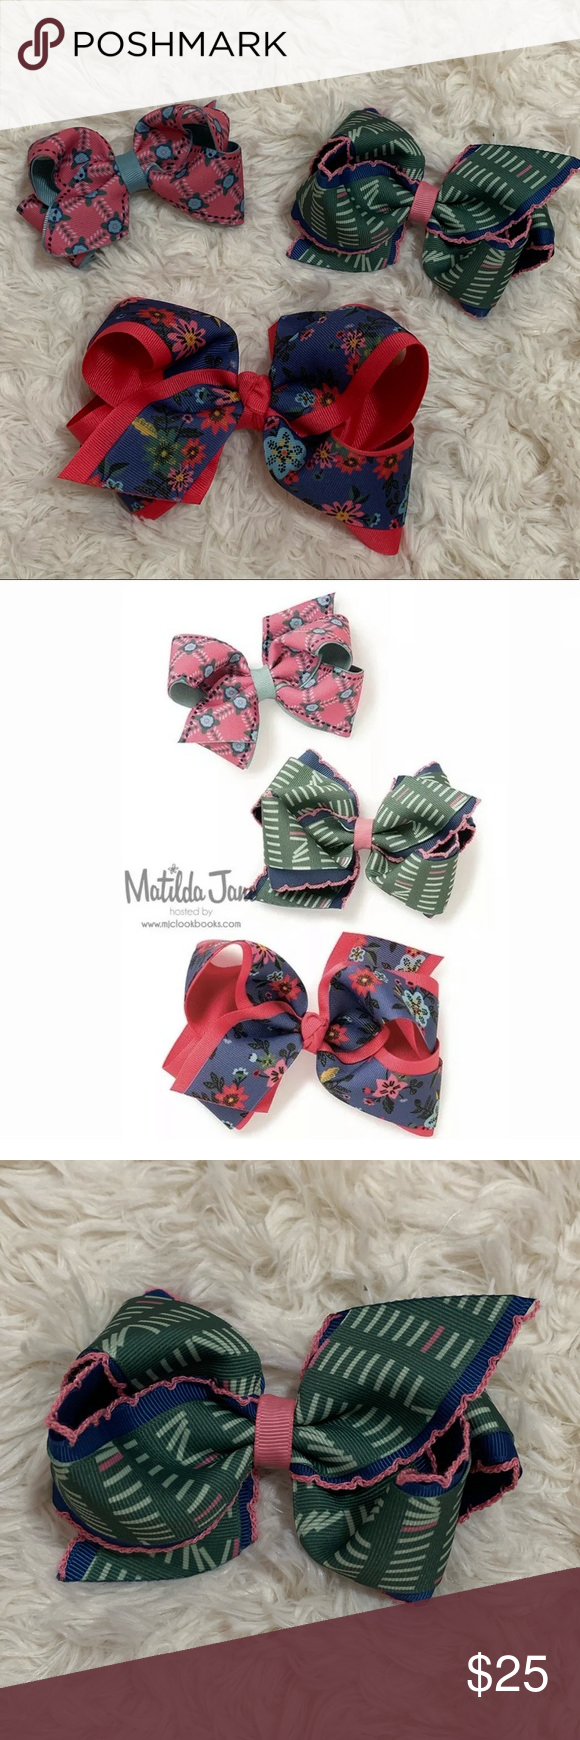 Matilda Jane BRAINIAC BOWS 3-Pc Set School Hair Matilda Jane BRAINIAC BOWS from the Choose Your Path Release. Set of 3. Retail $32.   The Largest blue and pink bow is new, never been worn.   The medium green bow with books print is new, never been worn.   The smallest pink and blue was one once or twice and in excellent condition.   Beautiful hair bows with mixed prints of school books and flowers. Perfect for first day of school! Matilda Jane Accessories Hair Accessories #firstdayofschoolhairst #firstdayofschoolhairstyles